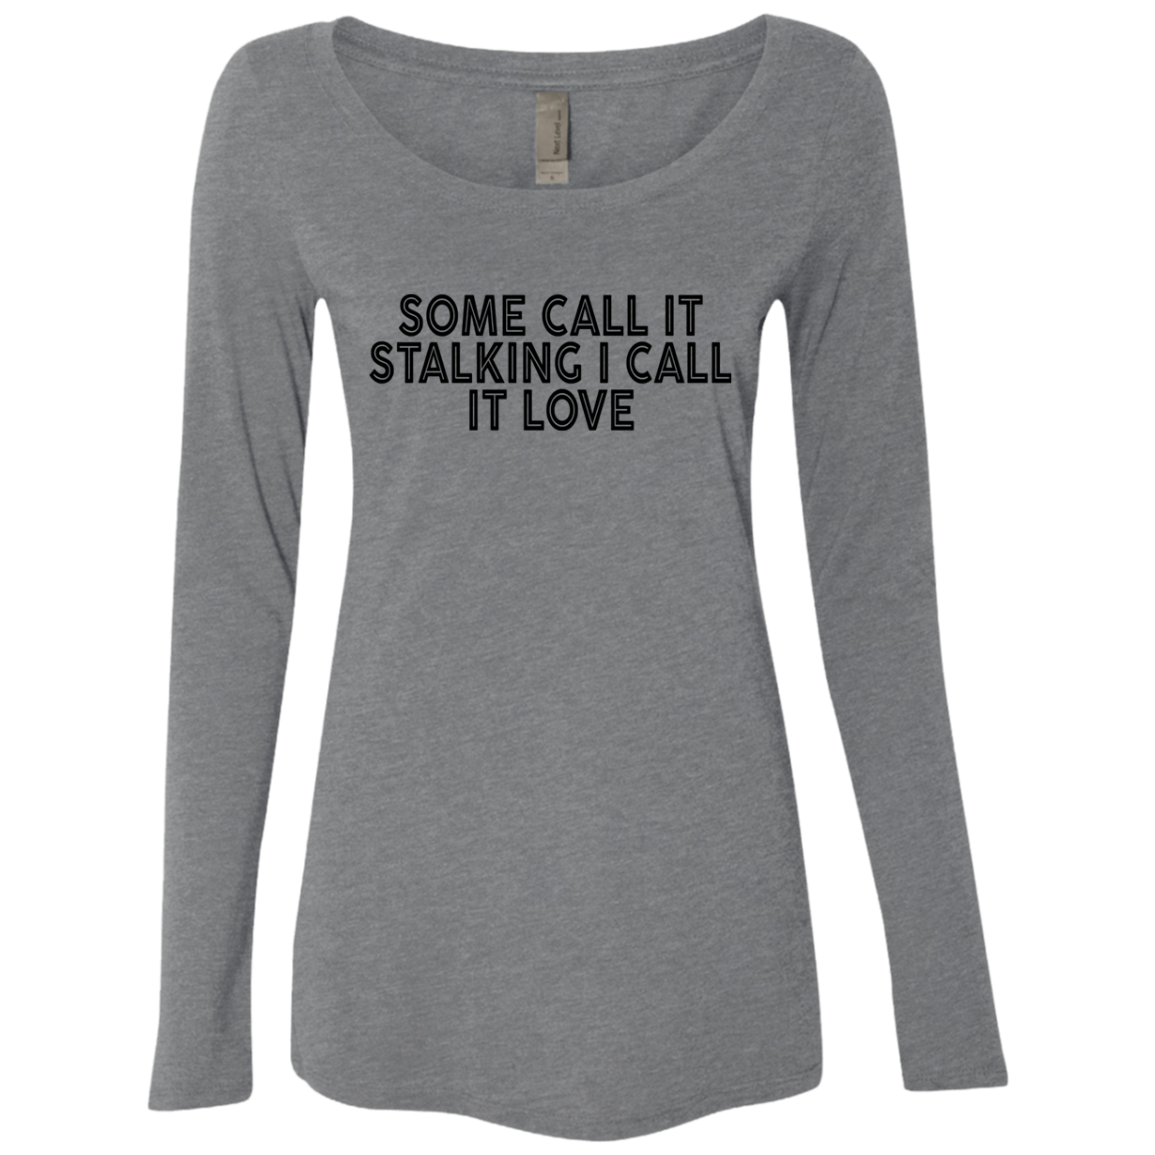 Some Call It Stalking I Call It Love Women's Long Sleeve Tee